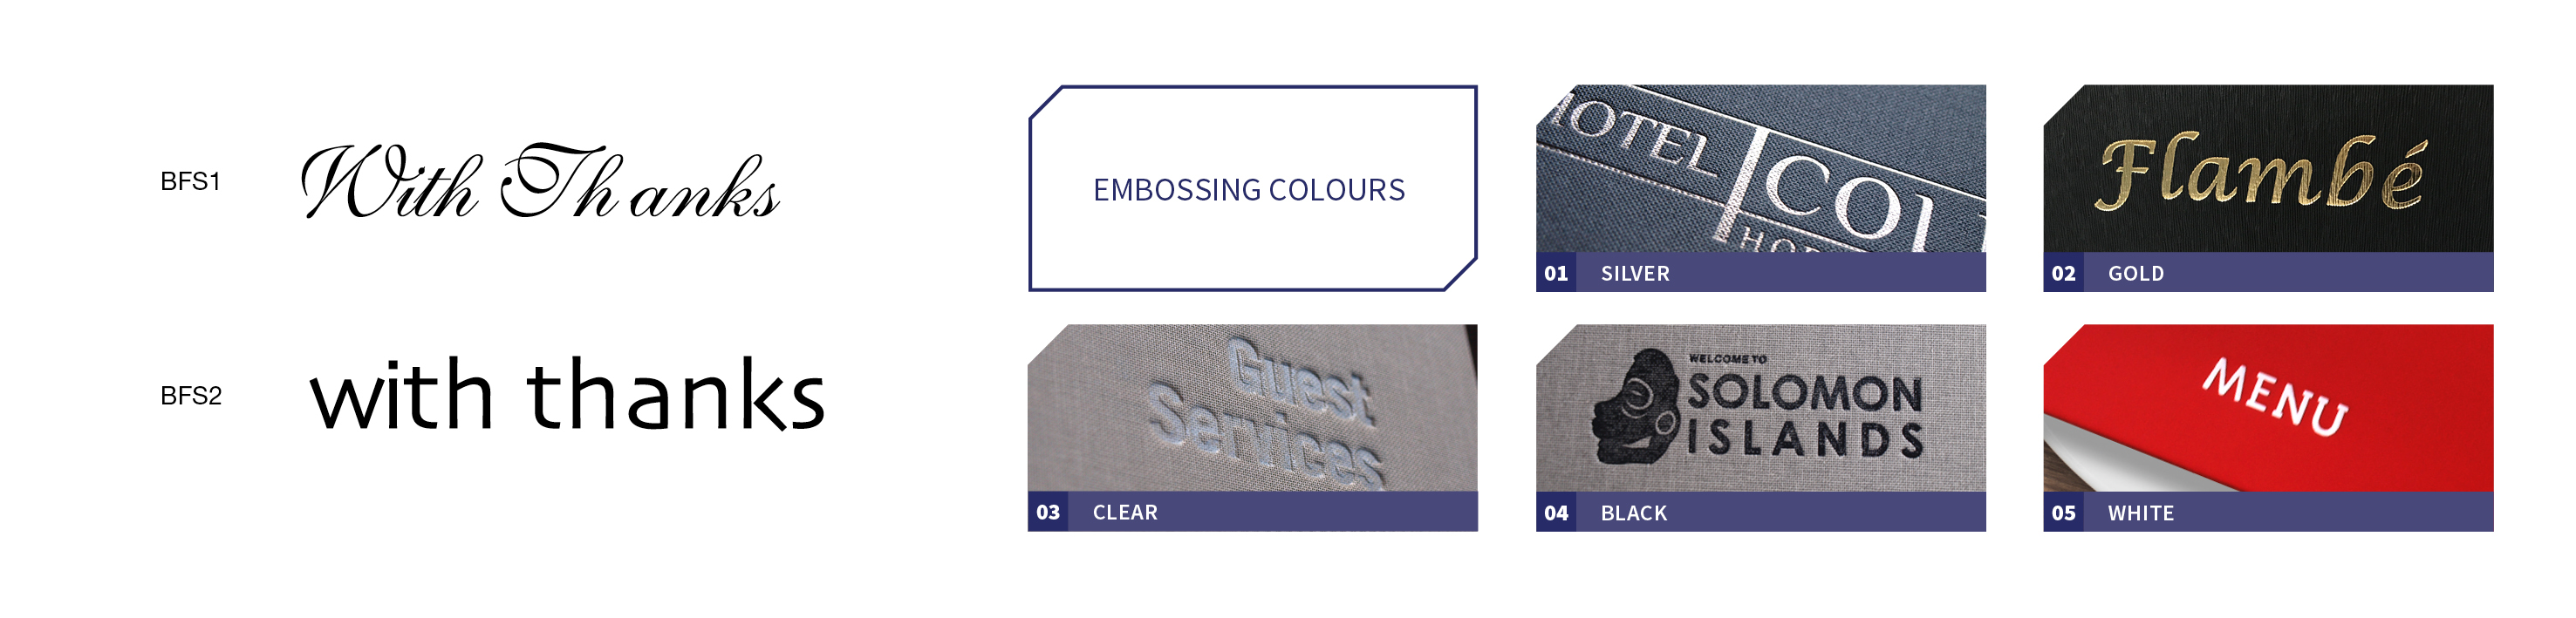 embossing-options-bill-press32.jpg